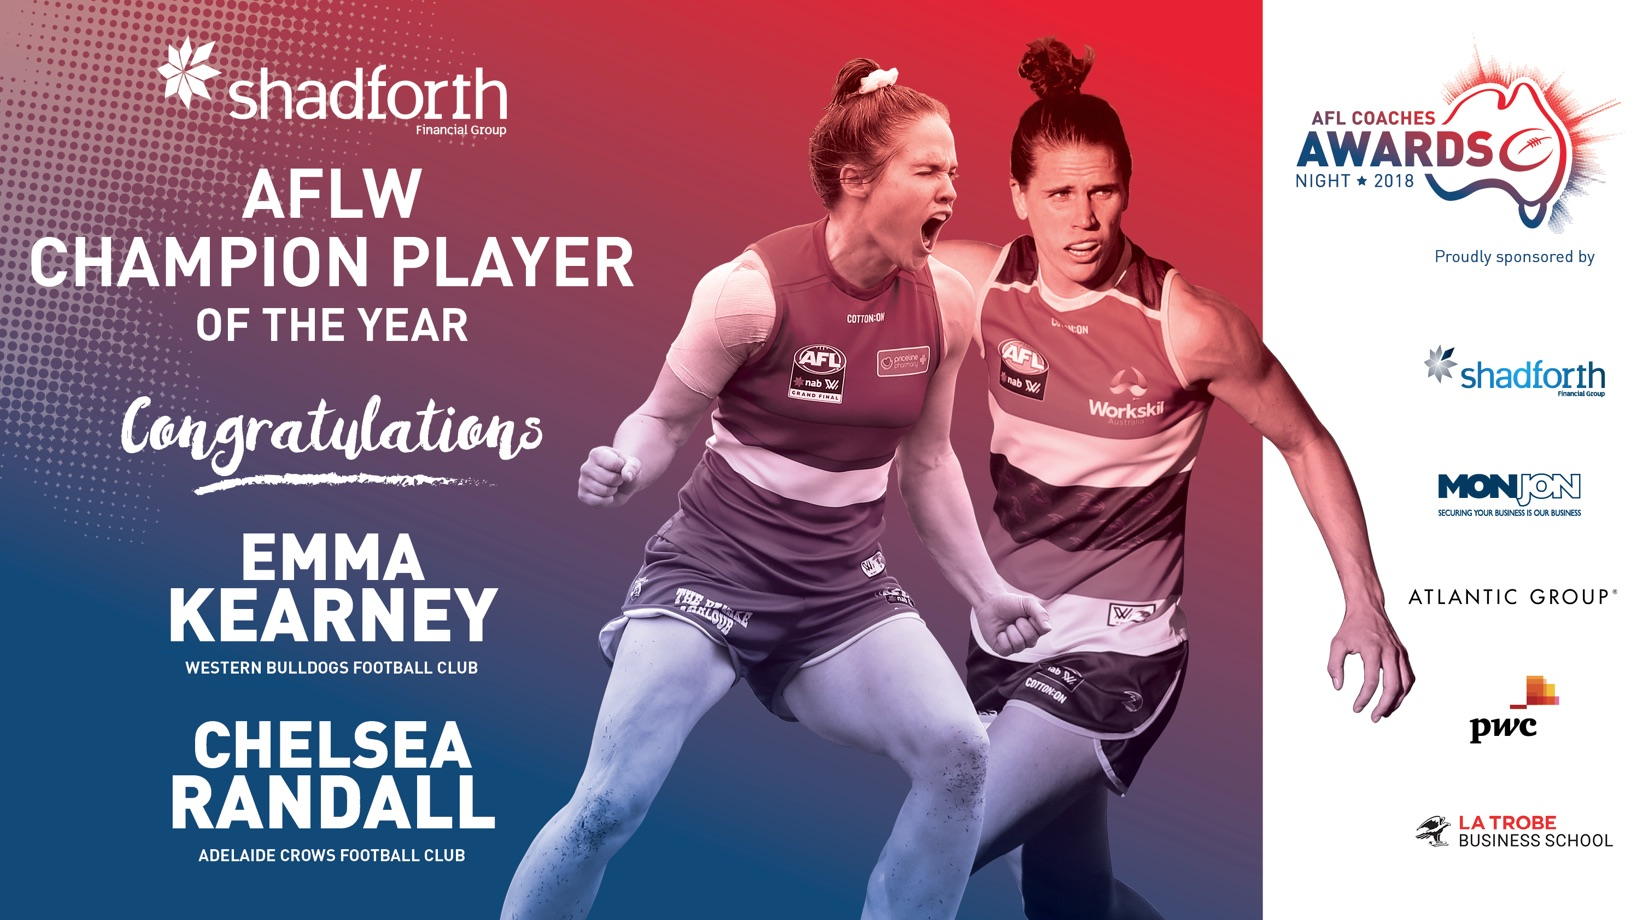 AFLW Champion Player of the Year